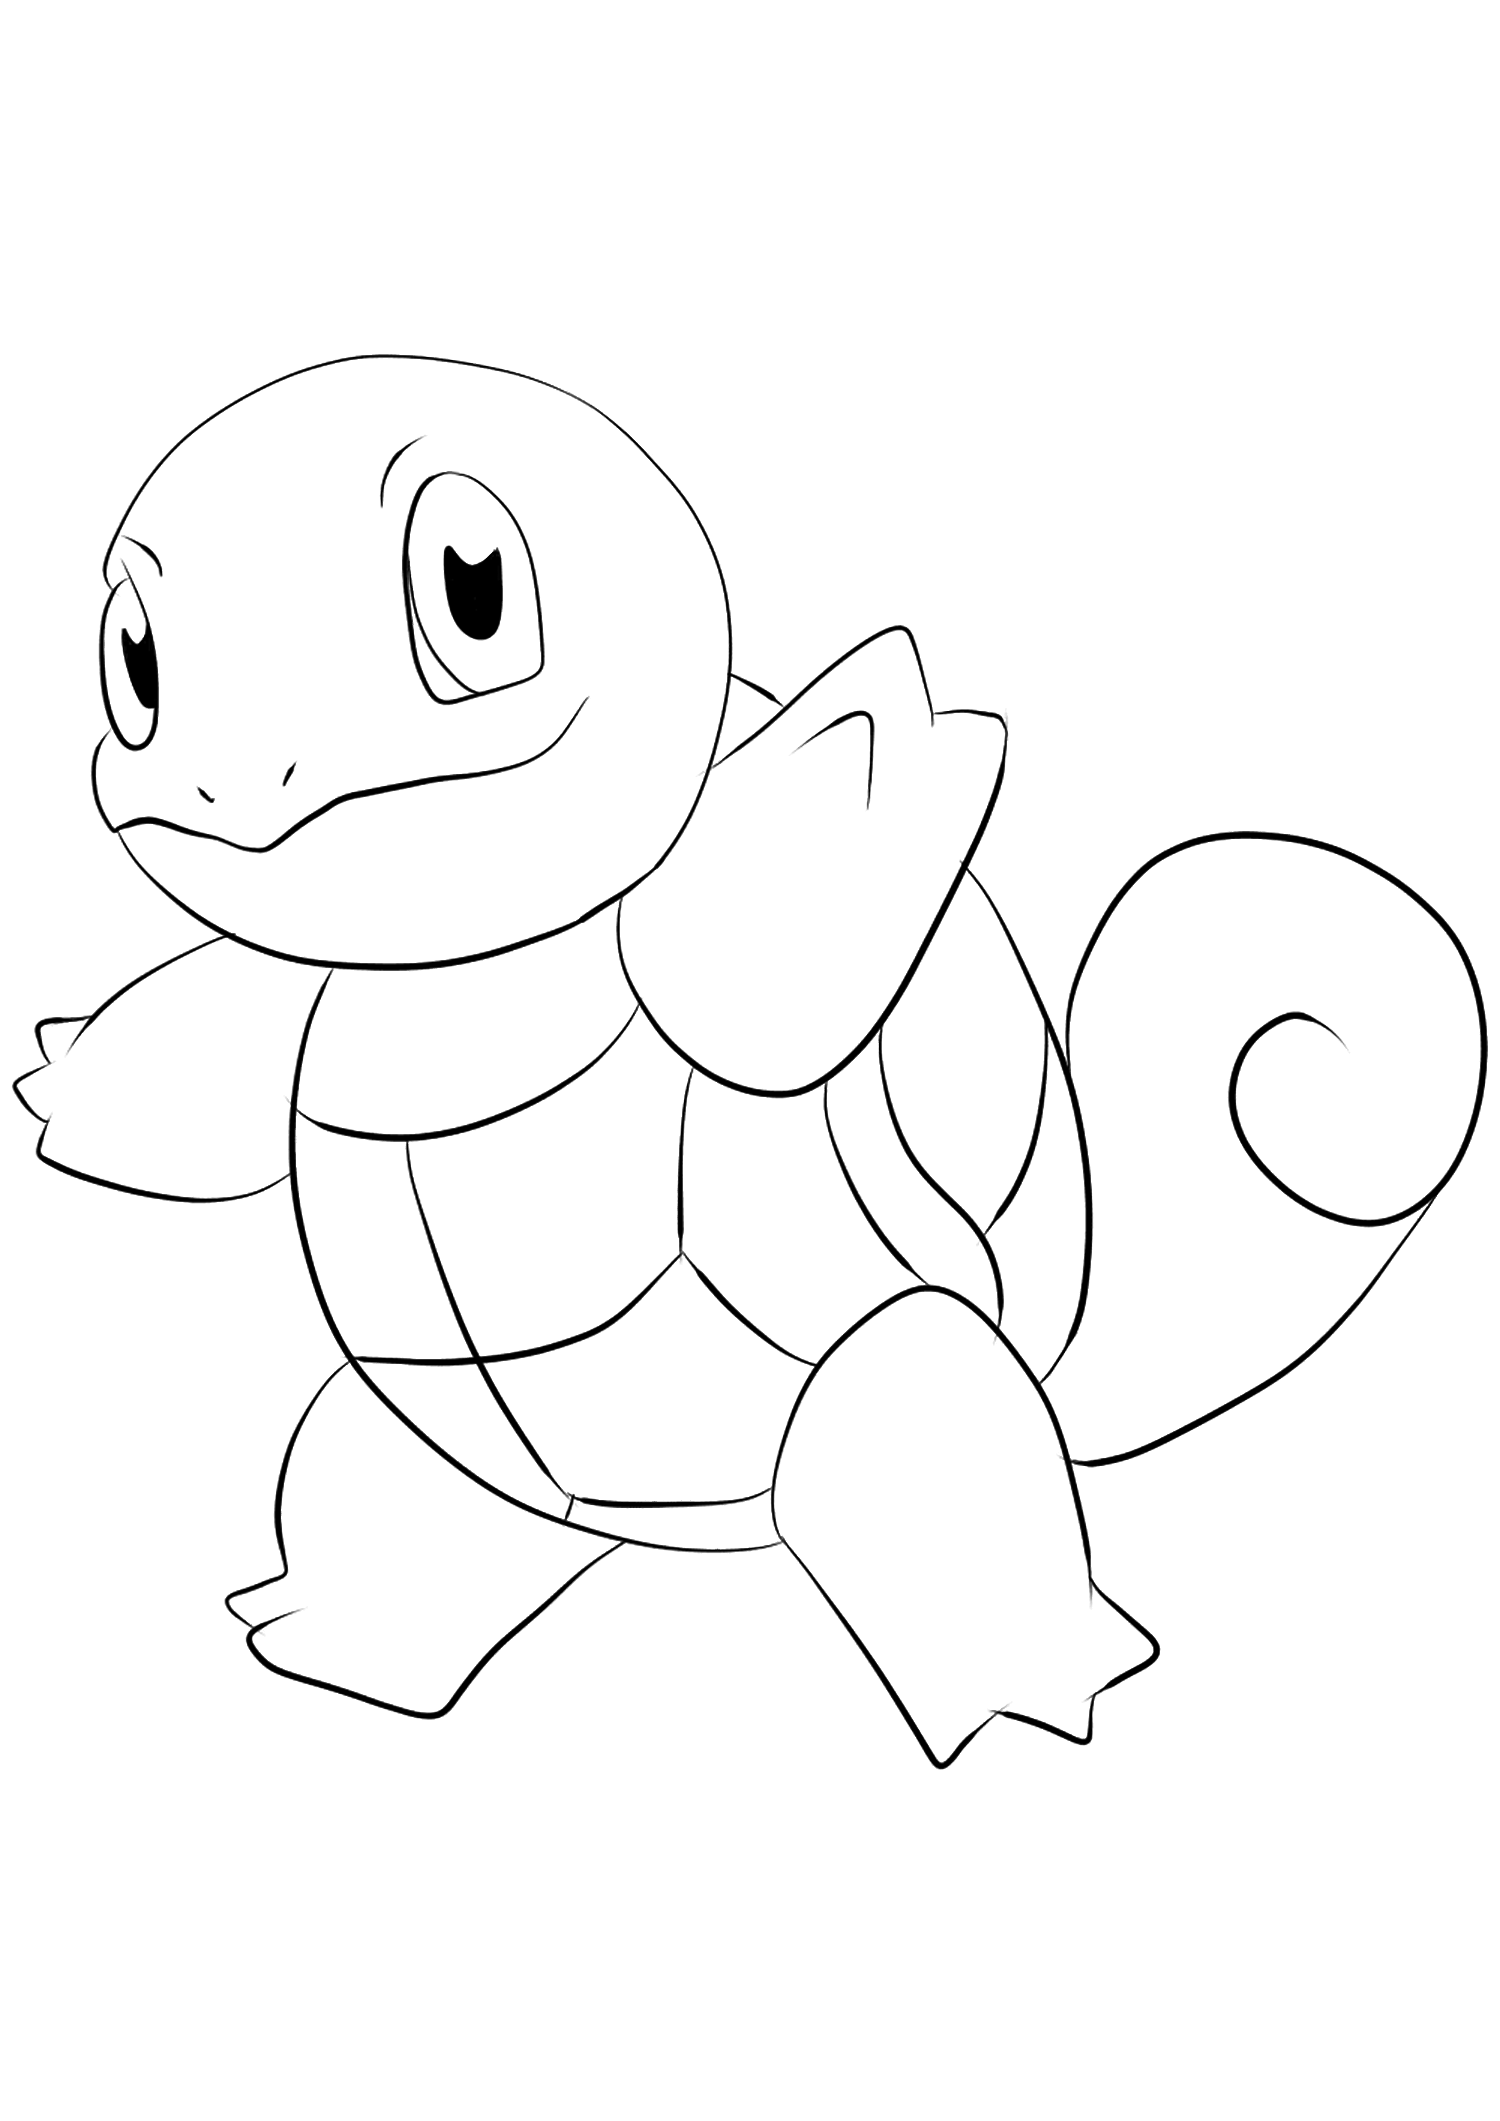 Squirtle (No.07)Squirtle Coloring page, Generation I Pokemon of type WaterOriginal image credit: Pokemon linearts by Lilly Gerbil'font-size:smaller;color:gray'>Permission: All rights reserved © Pokemon company and Ken Sugimori.